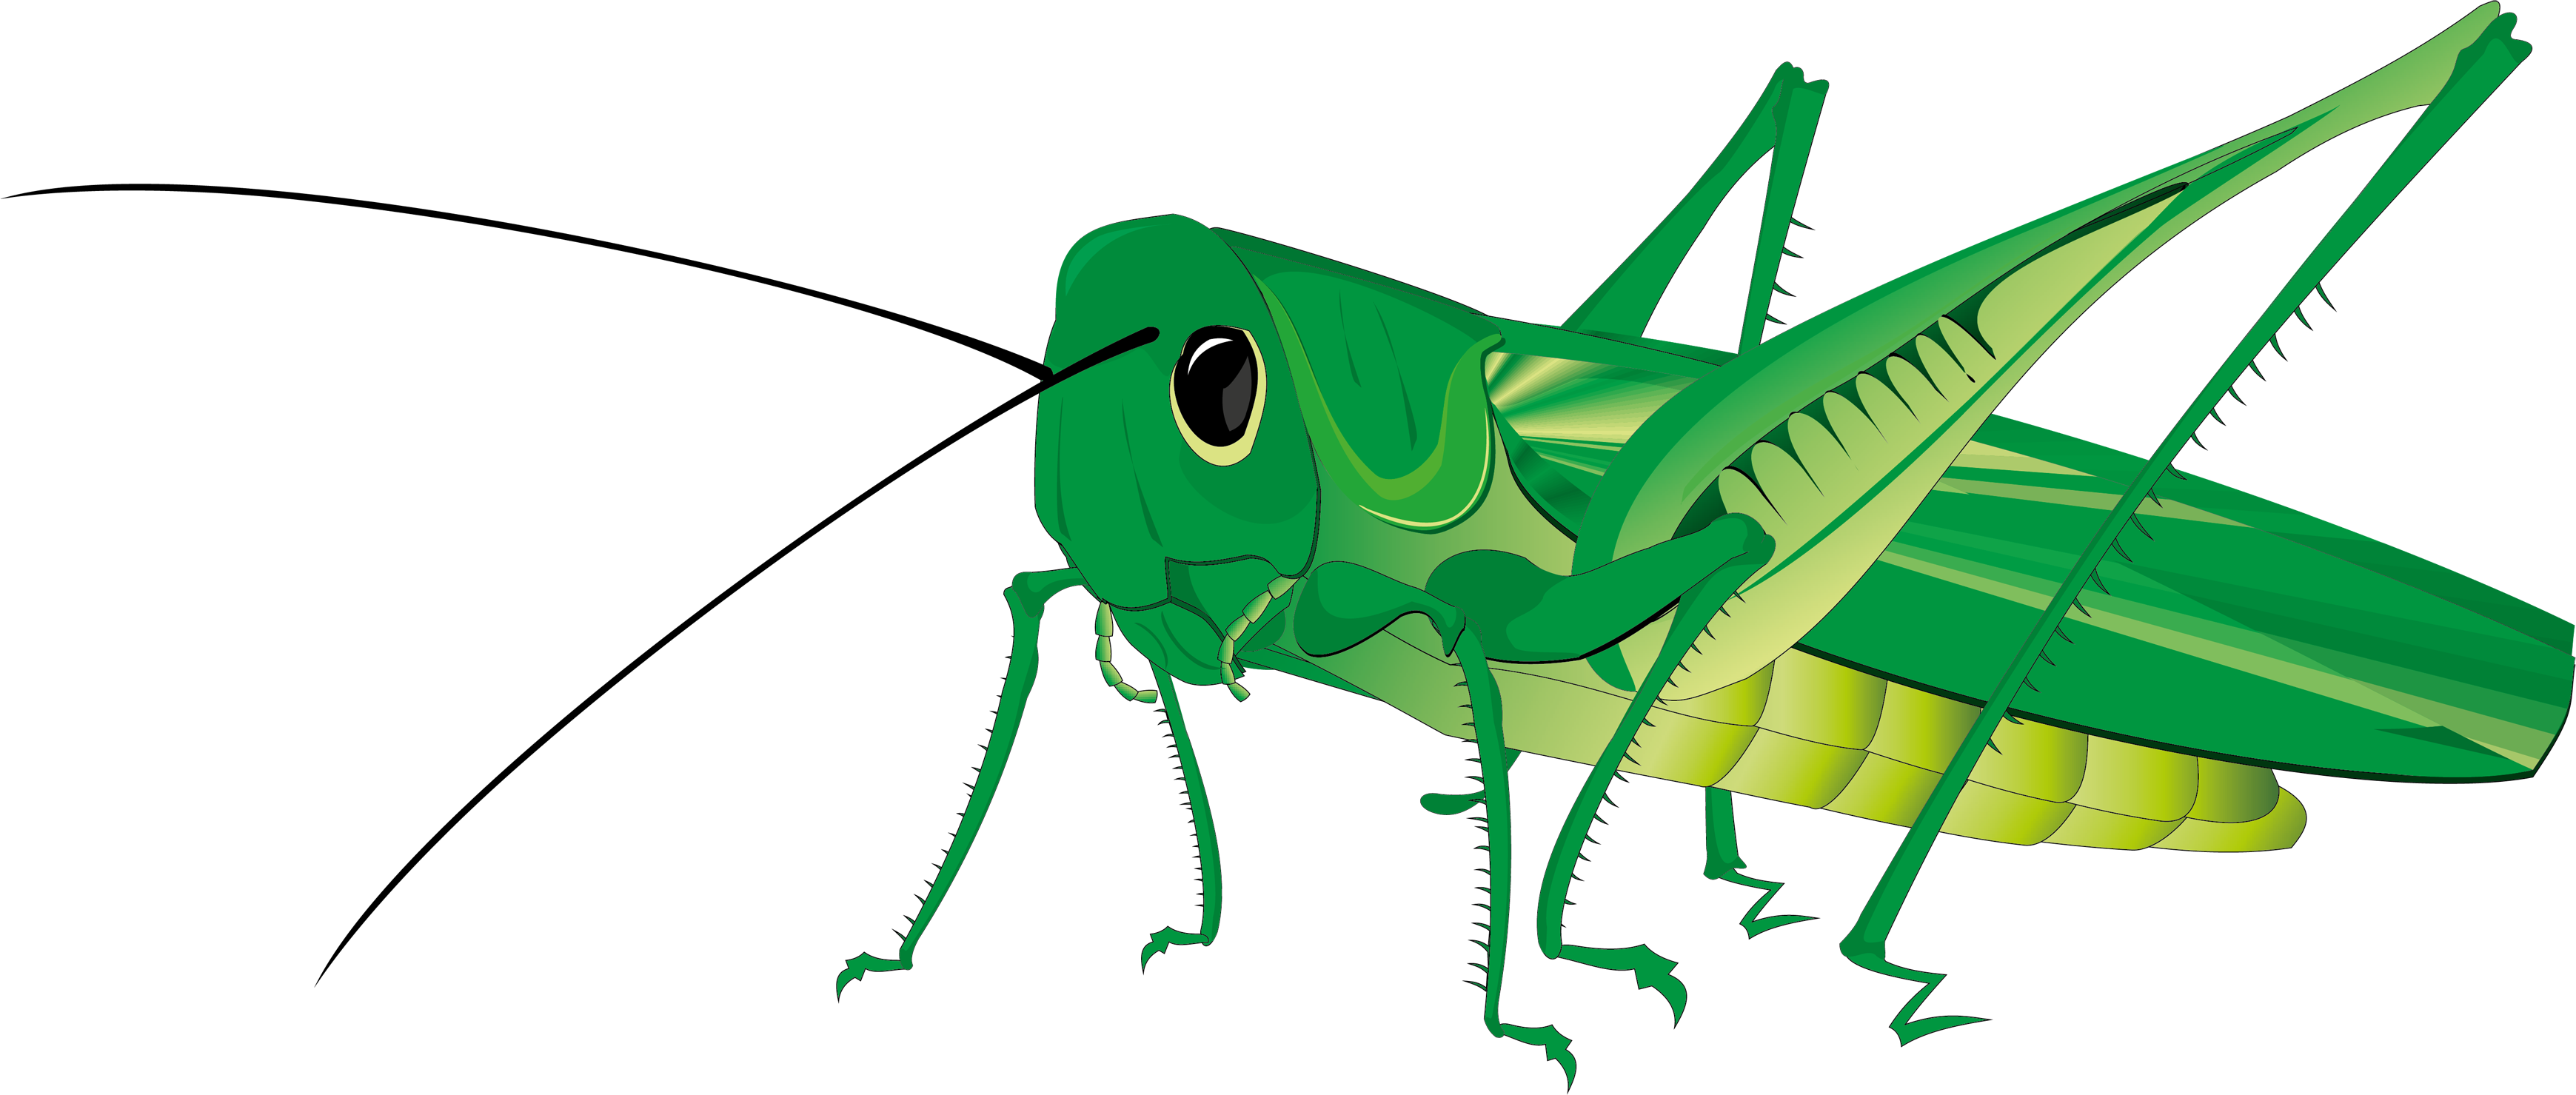 Grasshopper png images free. Insects clipart katydid